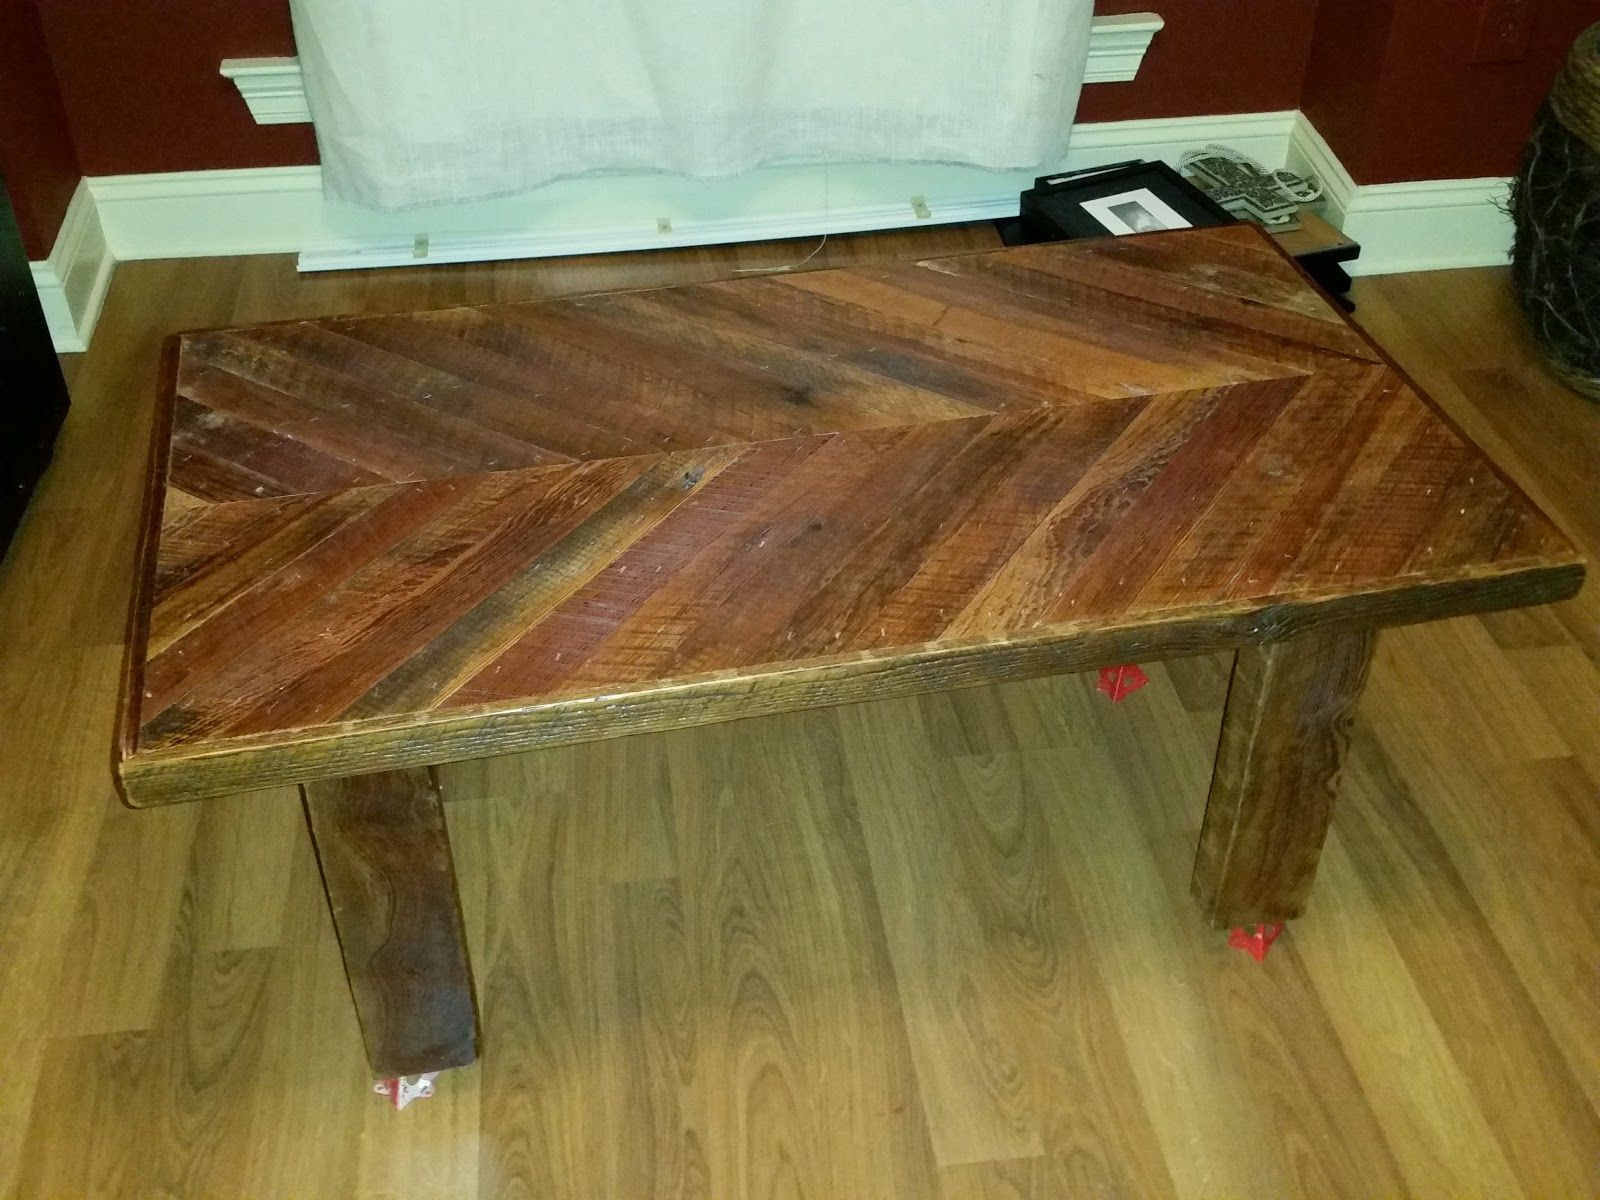 Merveilleux Coffee Table From Reclaimed Pine Taken From An Old Home In New Orleans  Coffee Table From